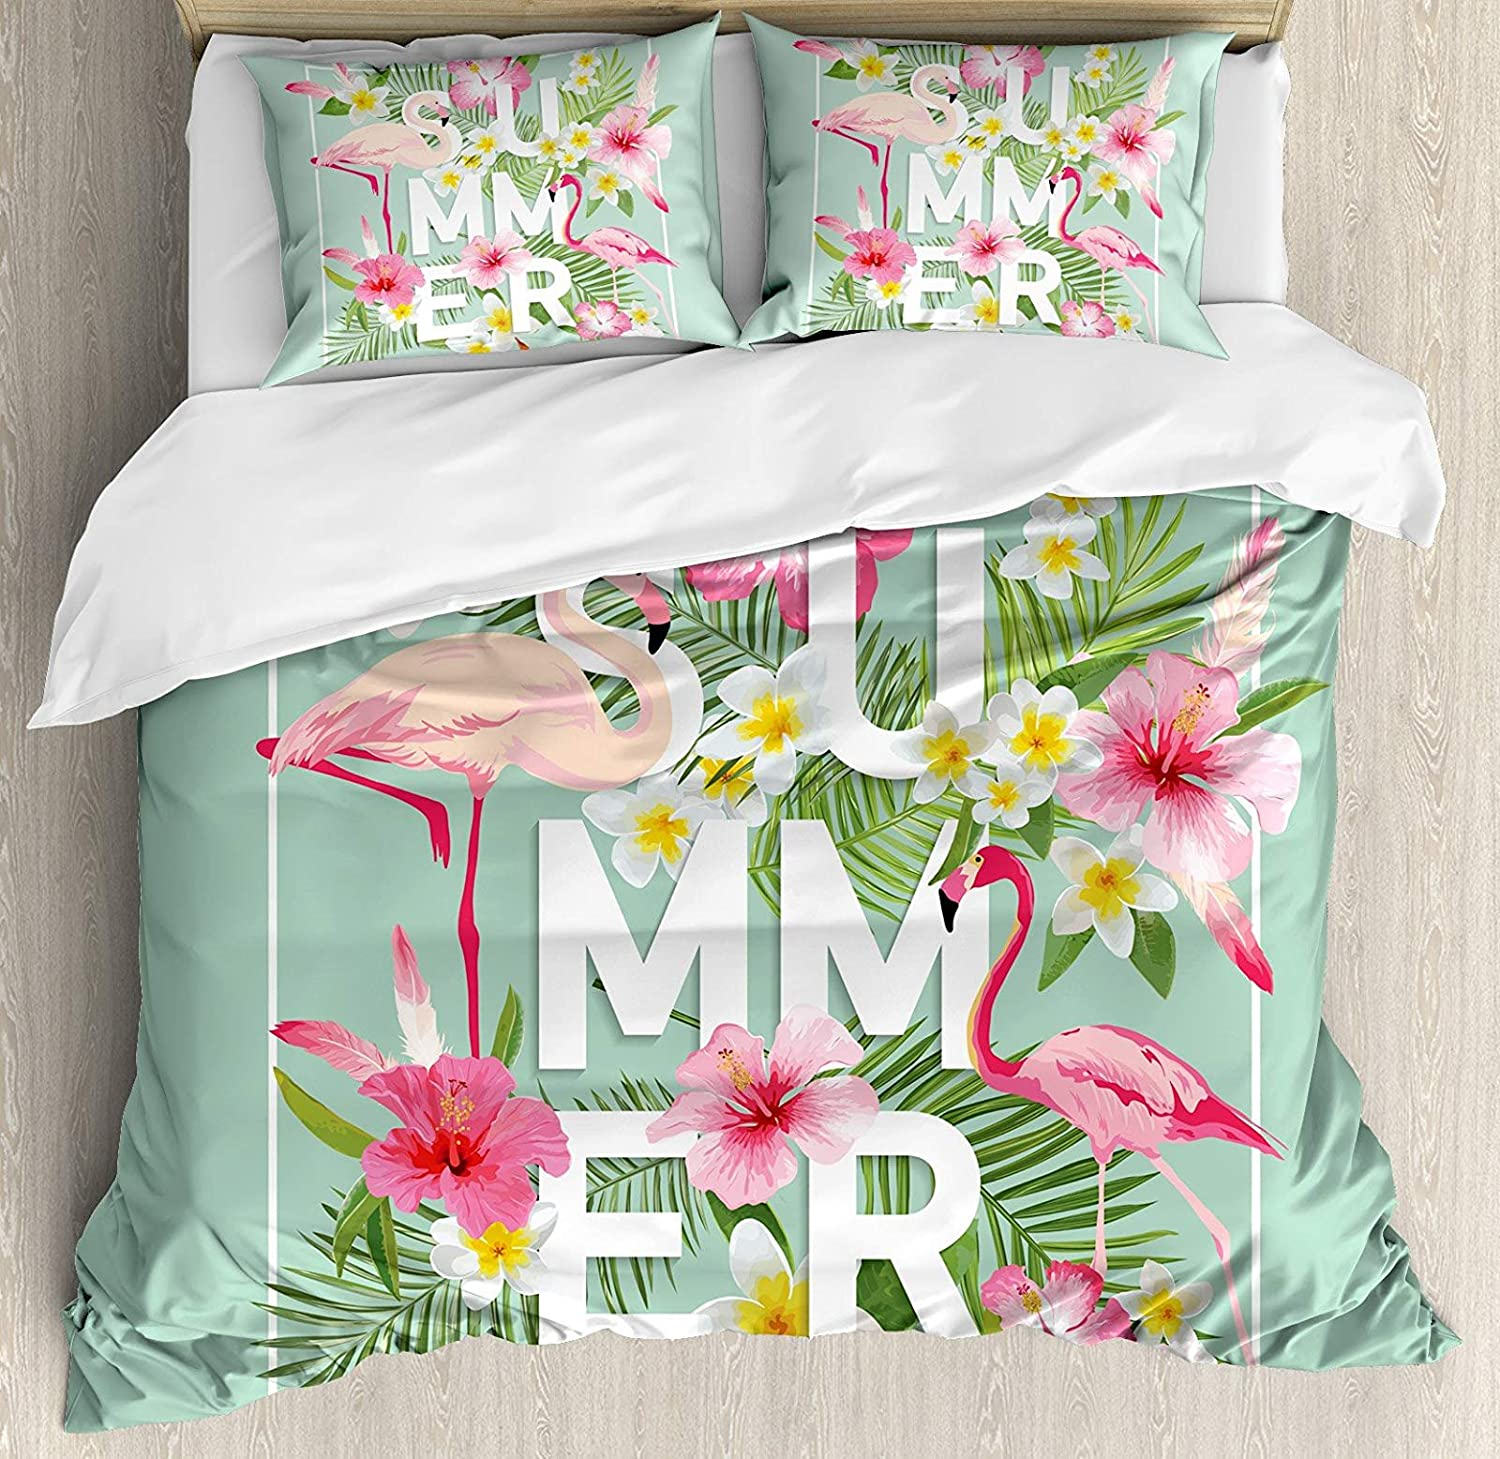 Floral 4 Pcs Bedding Set Full Size, Tropical Flower Flamingos Retro Wedding Romance Petals Graphic Artwork All Season Duvet Cover Bed Set, Mint Green Pink